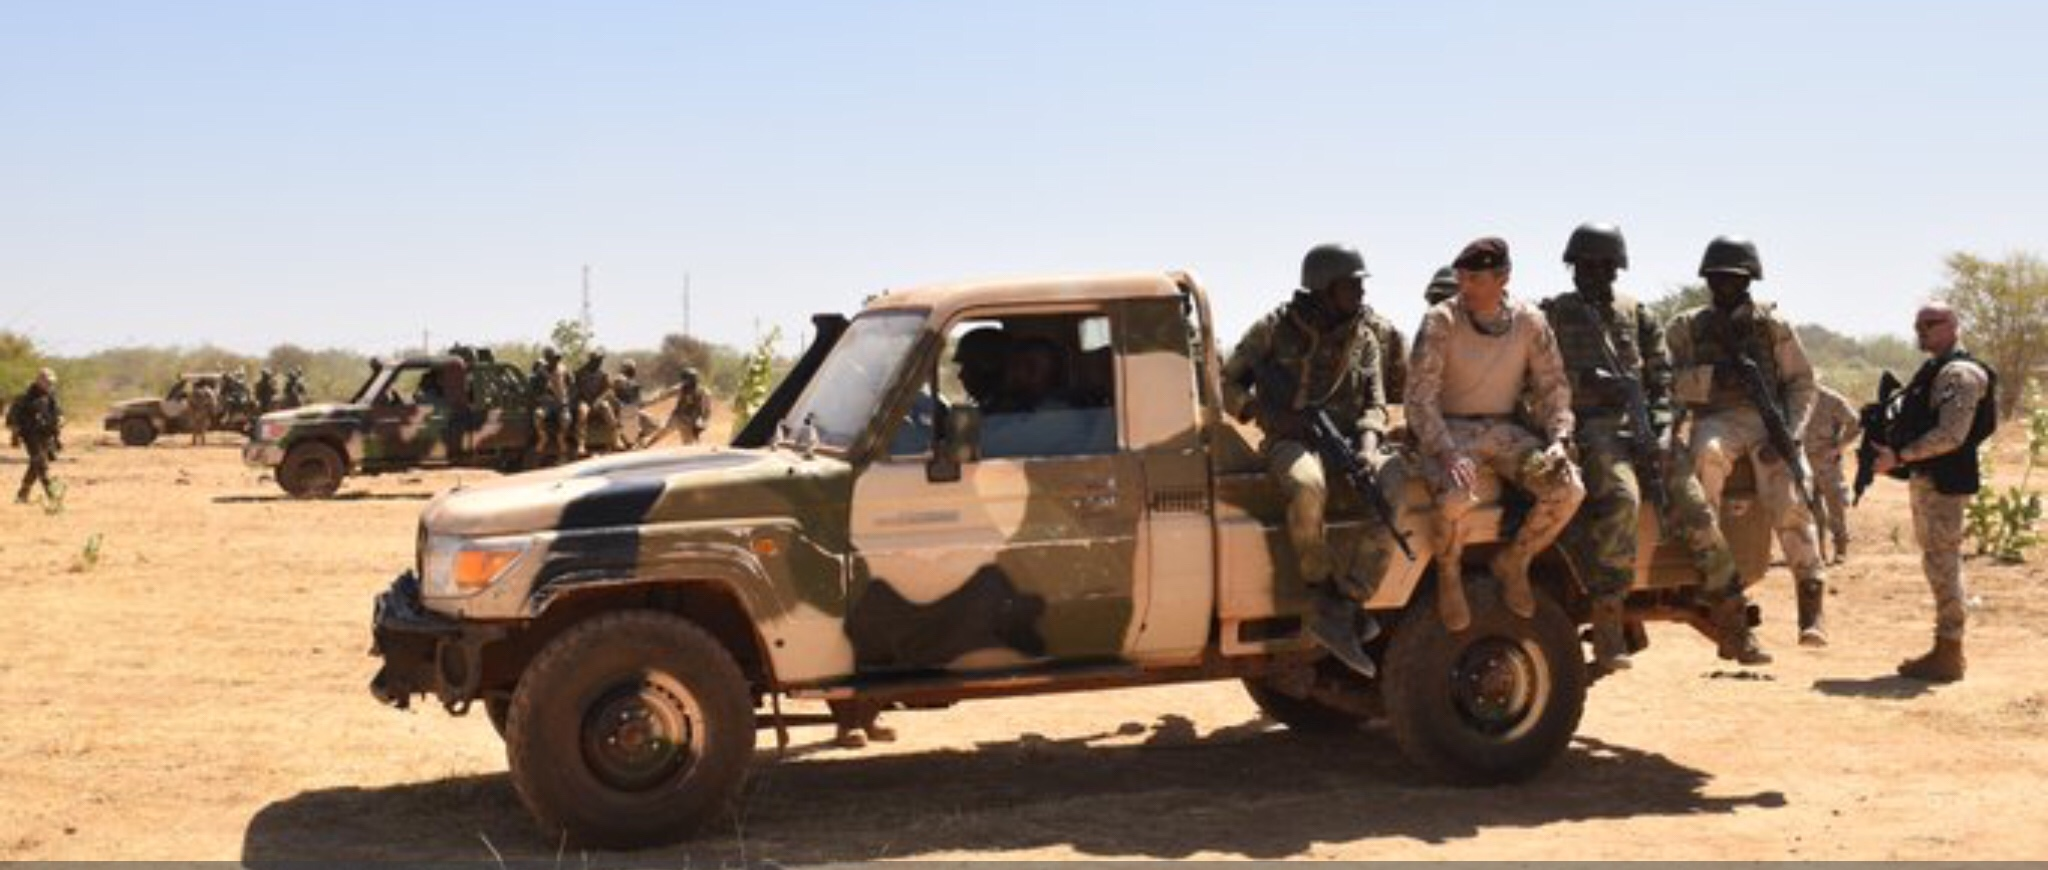 EU increases support to Mali